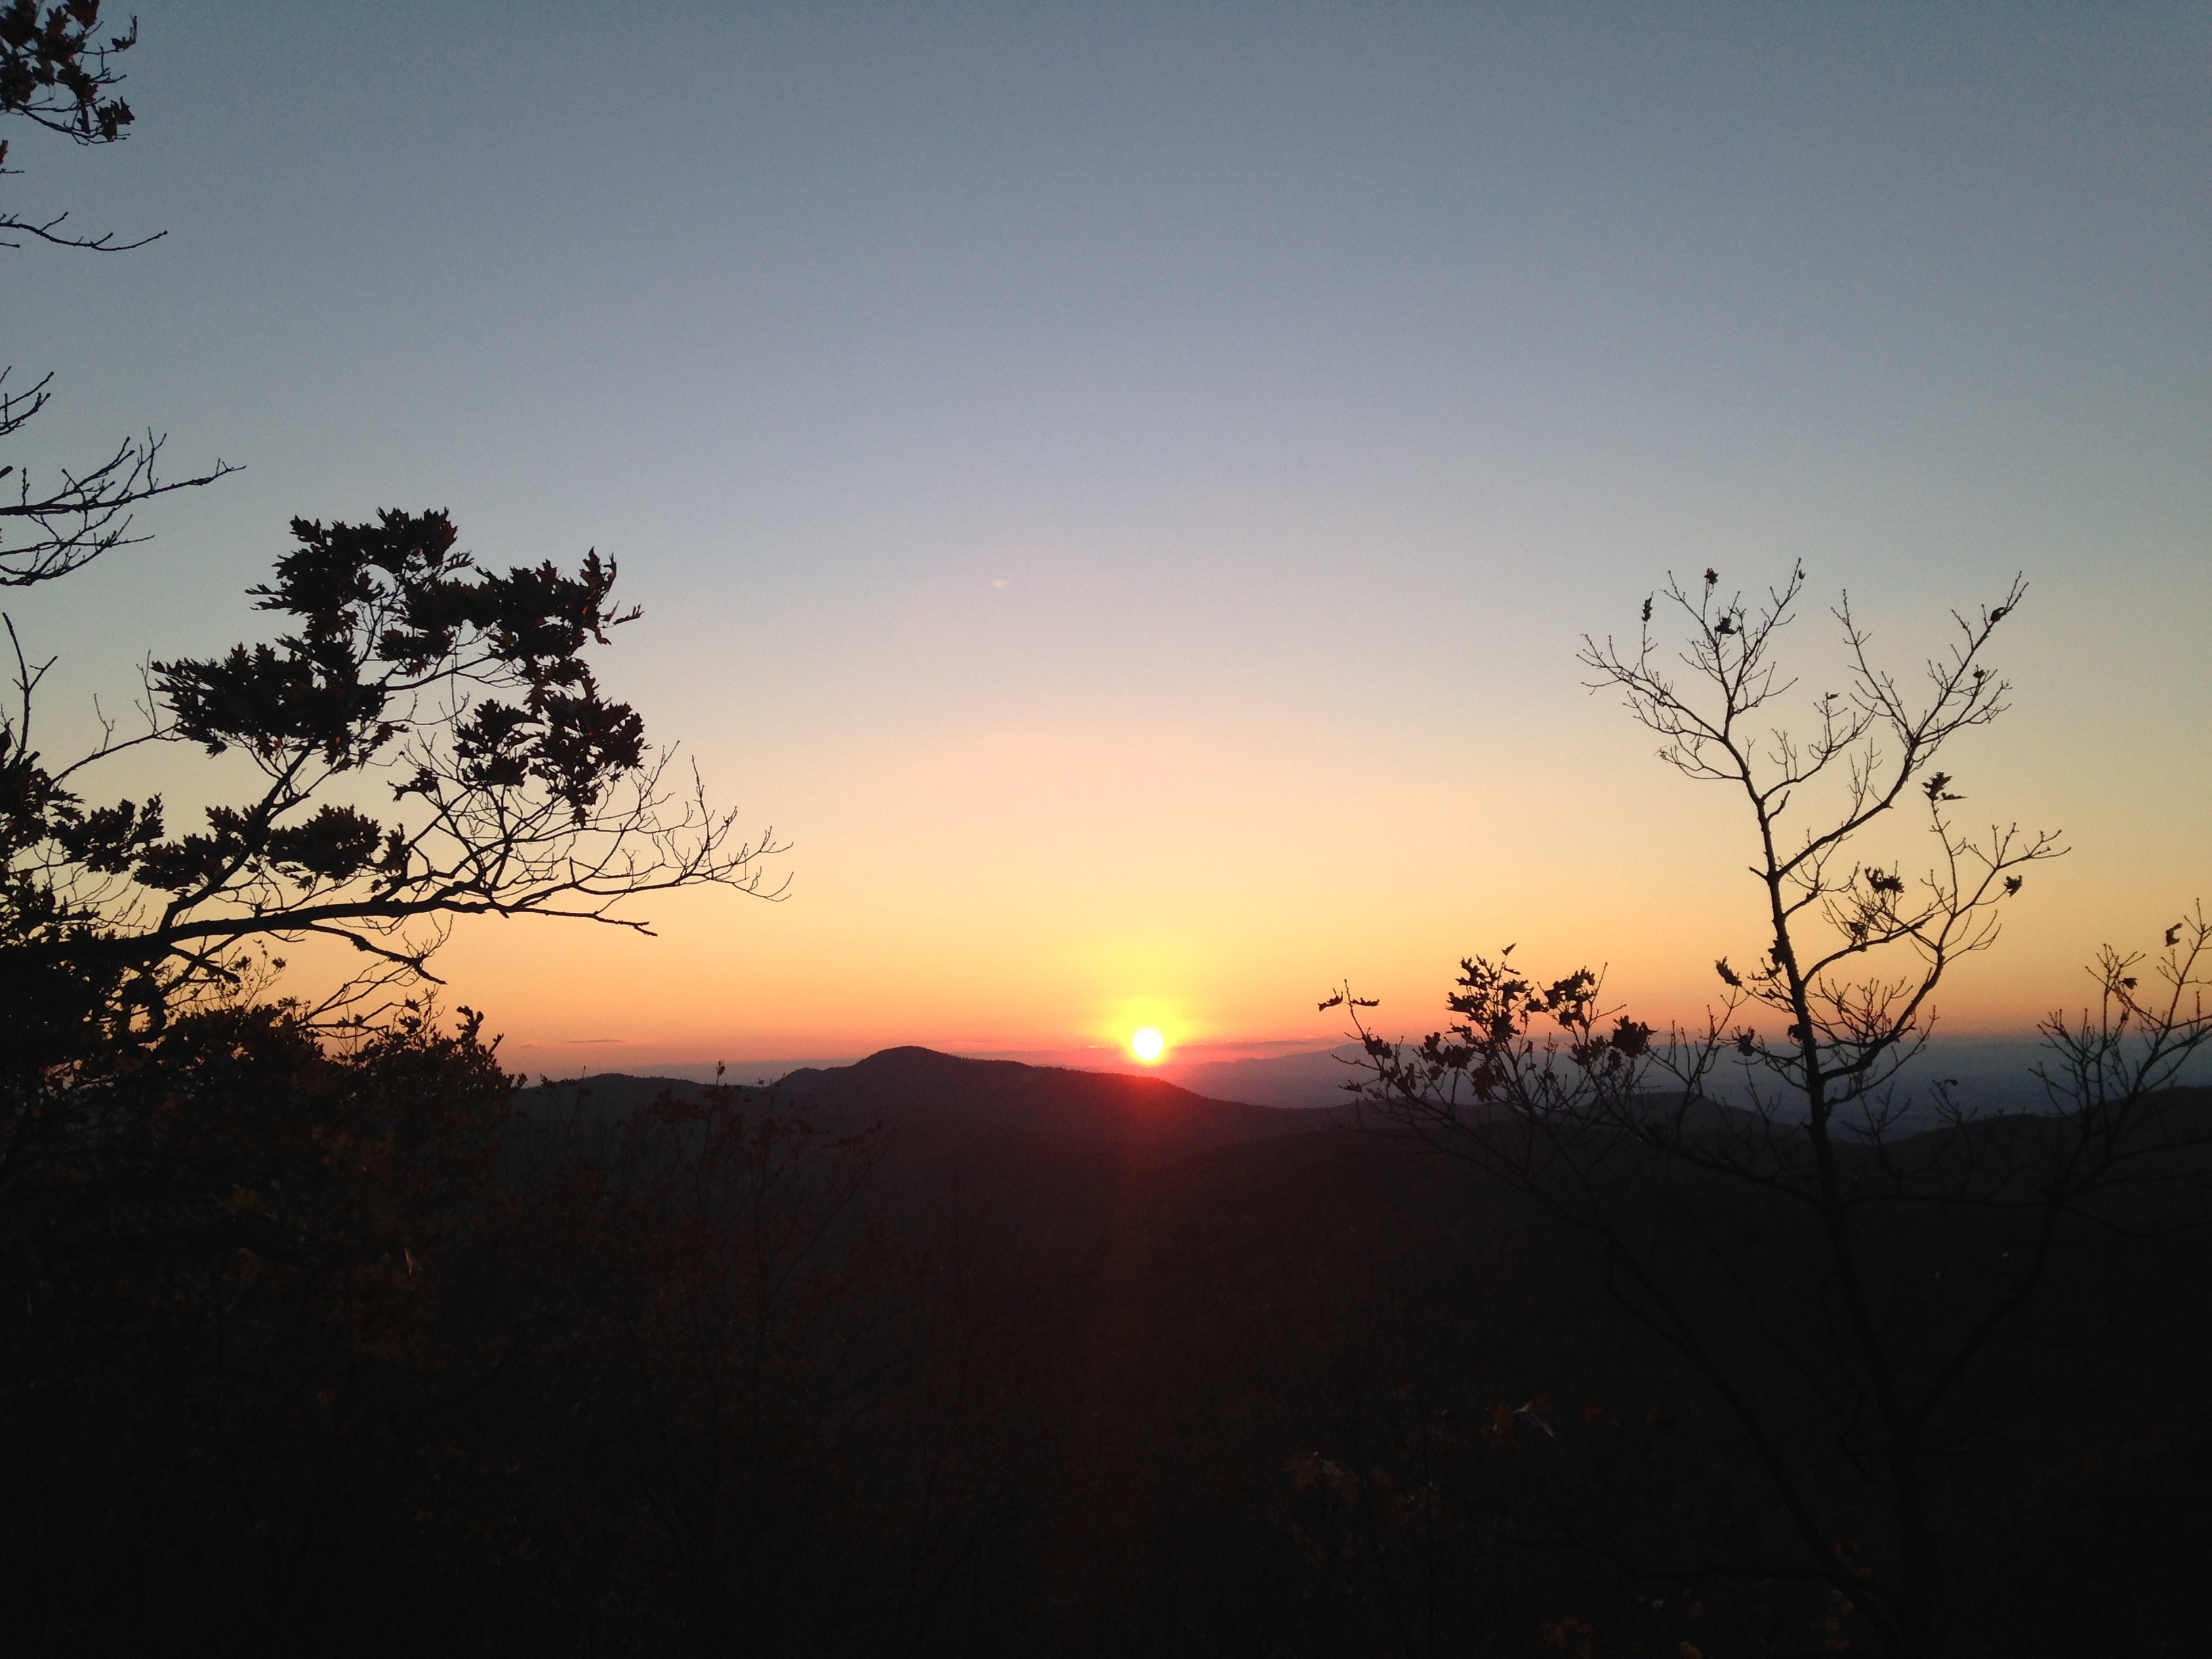 sunset, shenandoah national park, virginia